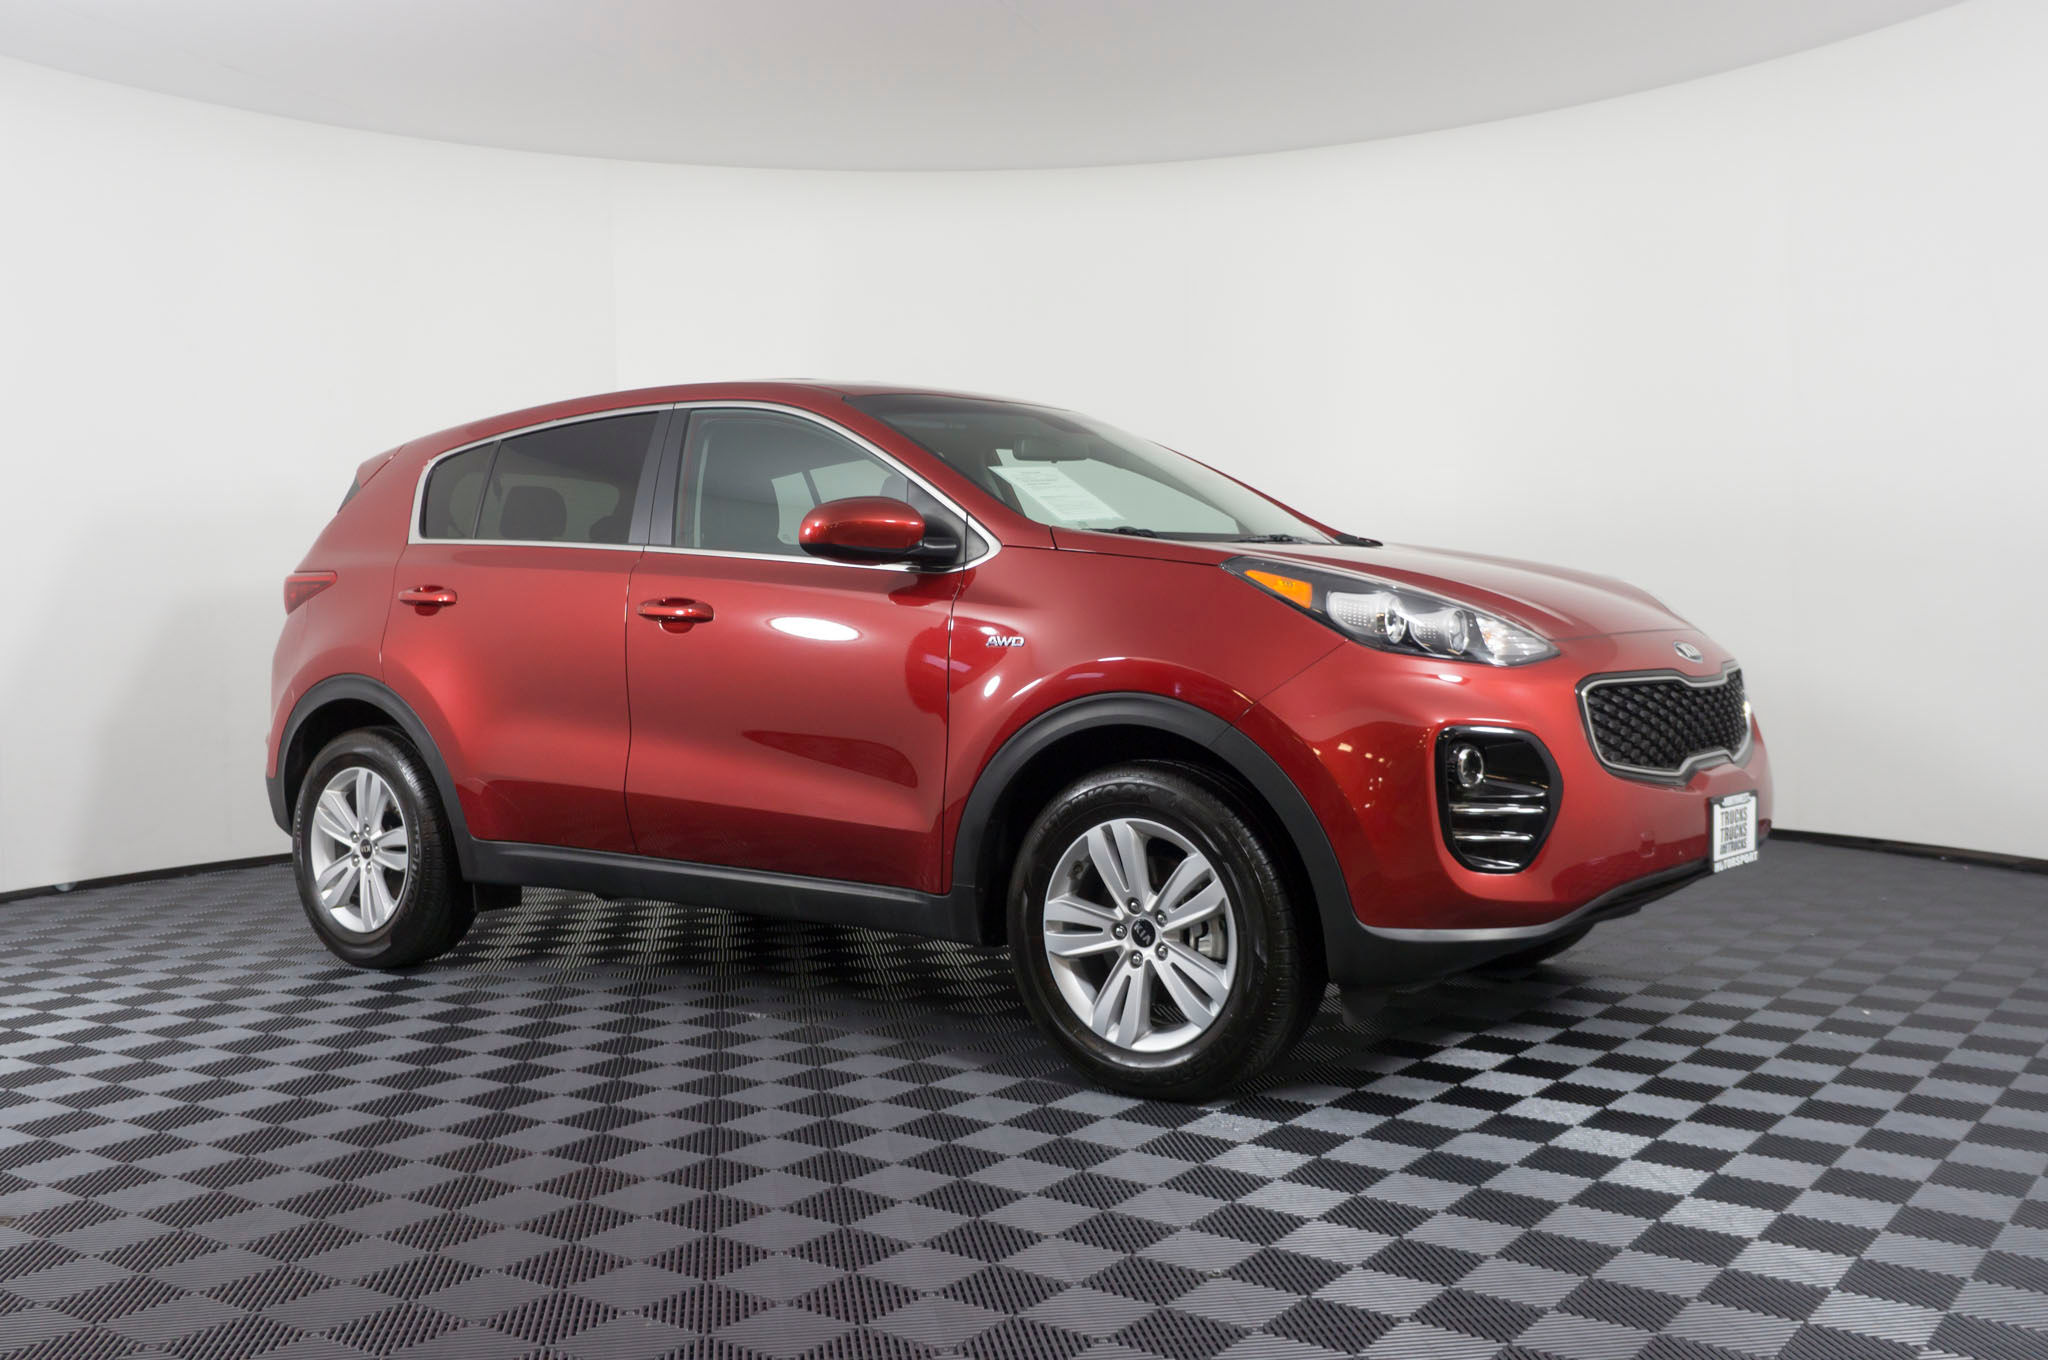 suv three update awd ex term cars sportage motion front quarter kia review long in